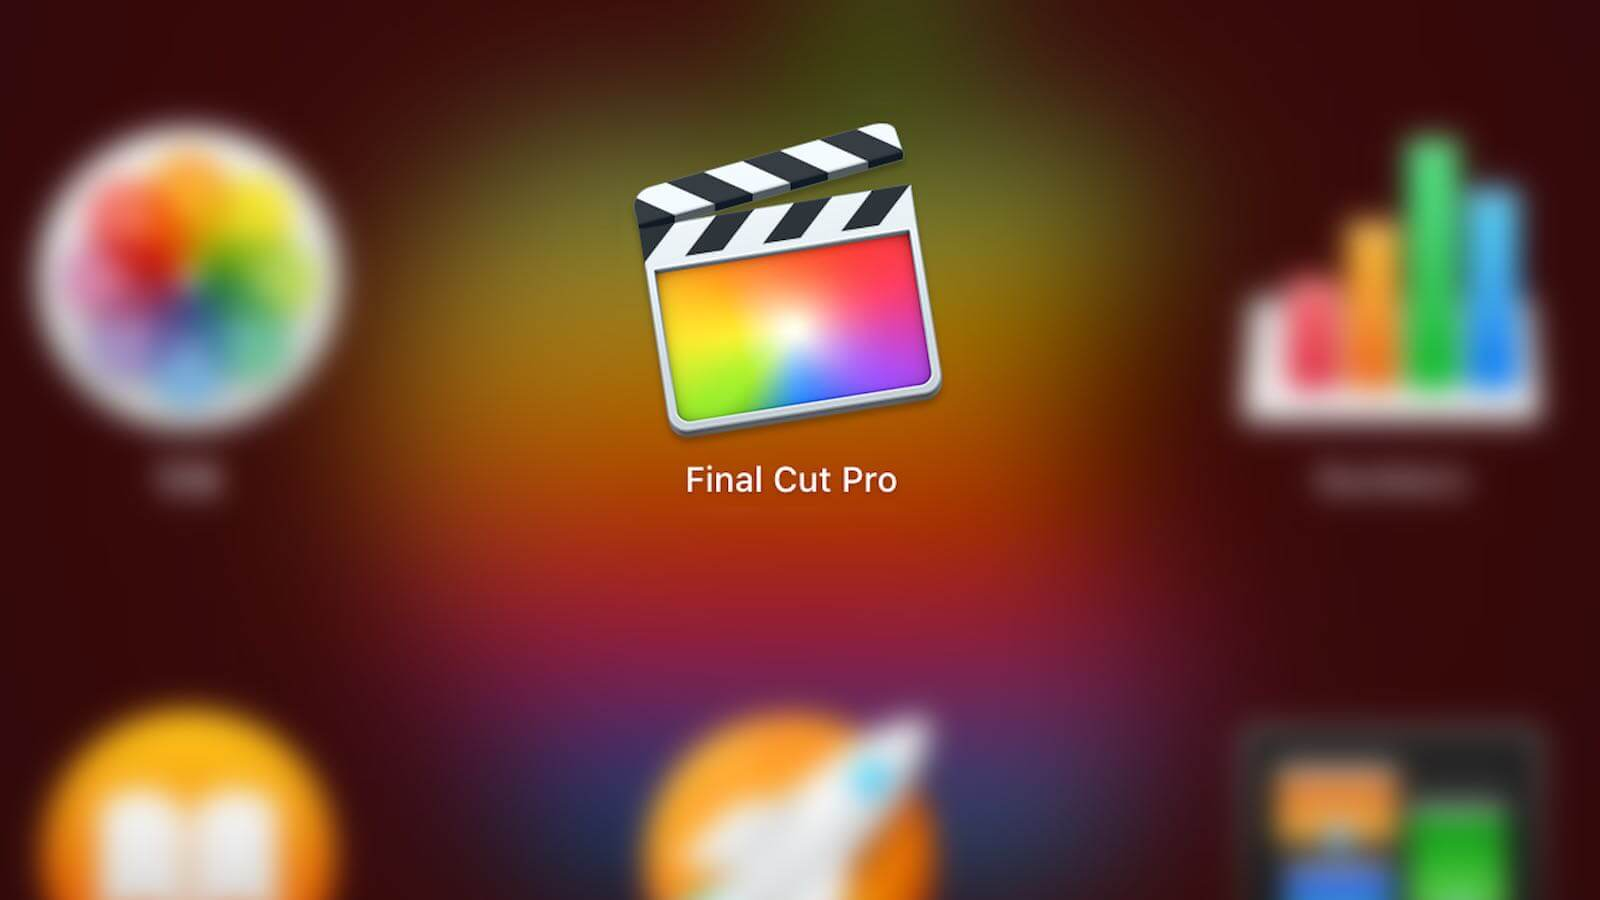 0232 Explain the basic usage of Final Cut Pro 01